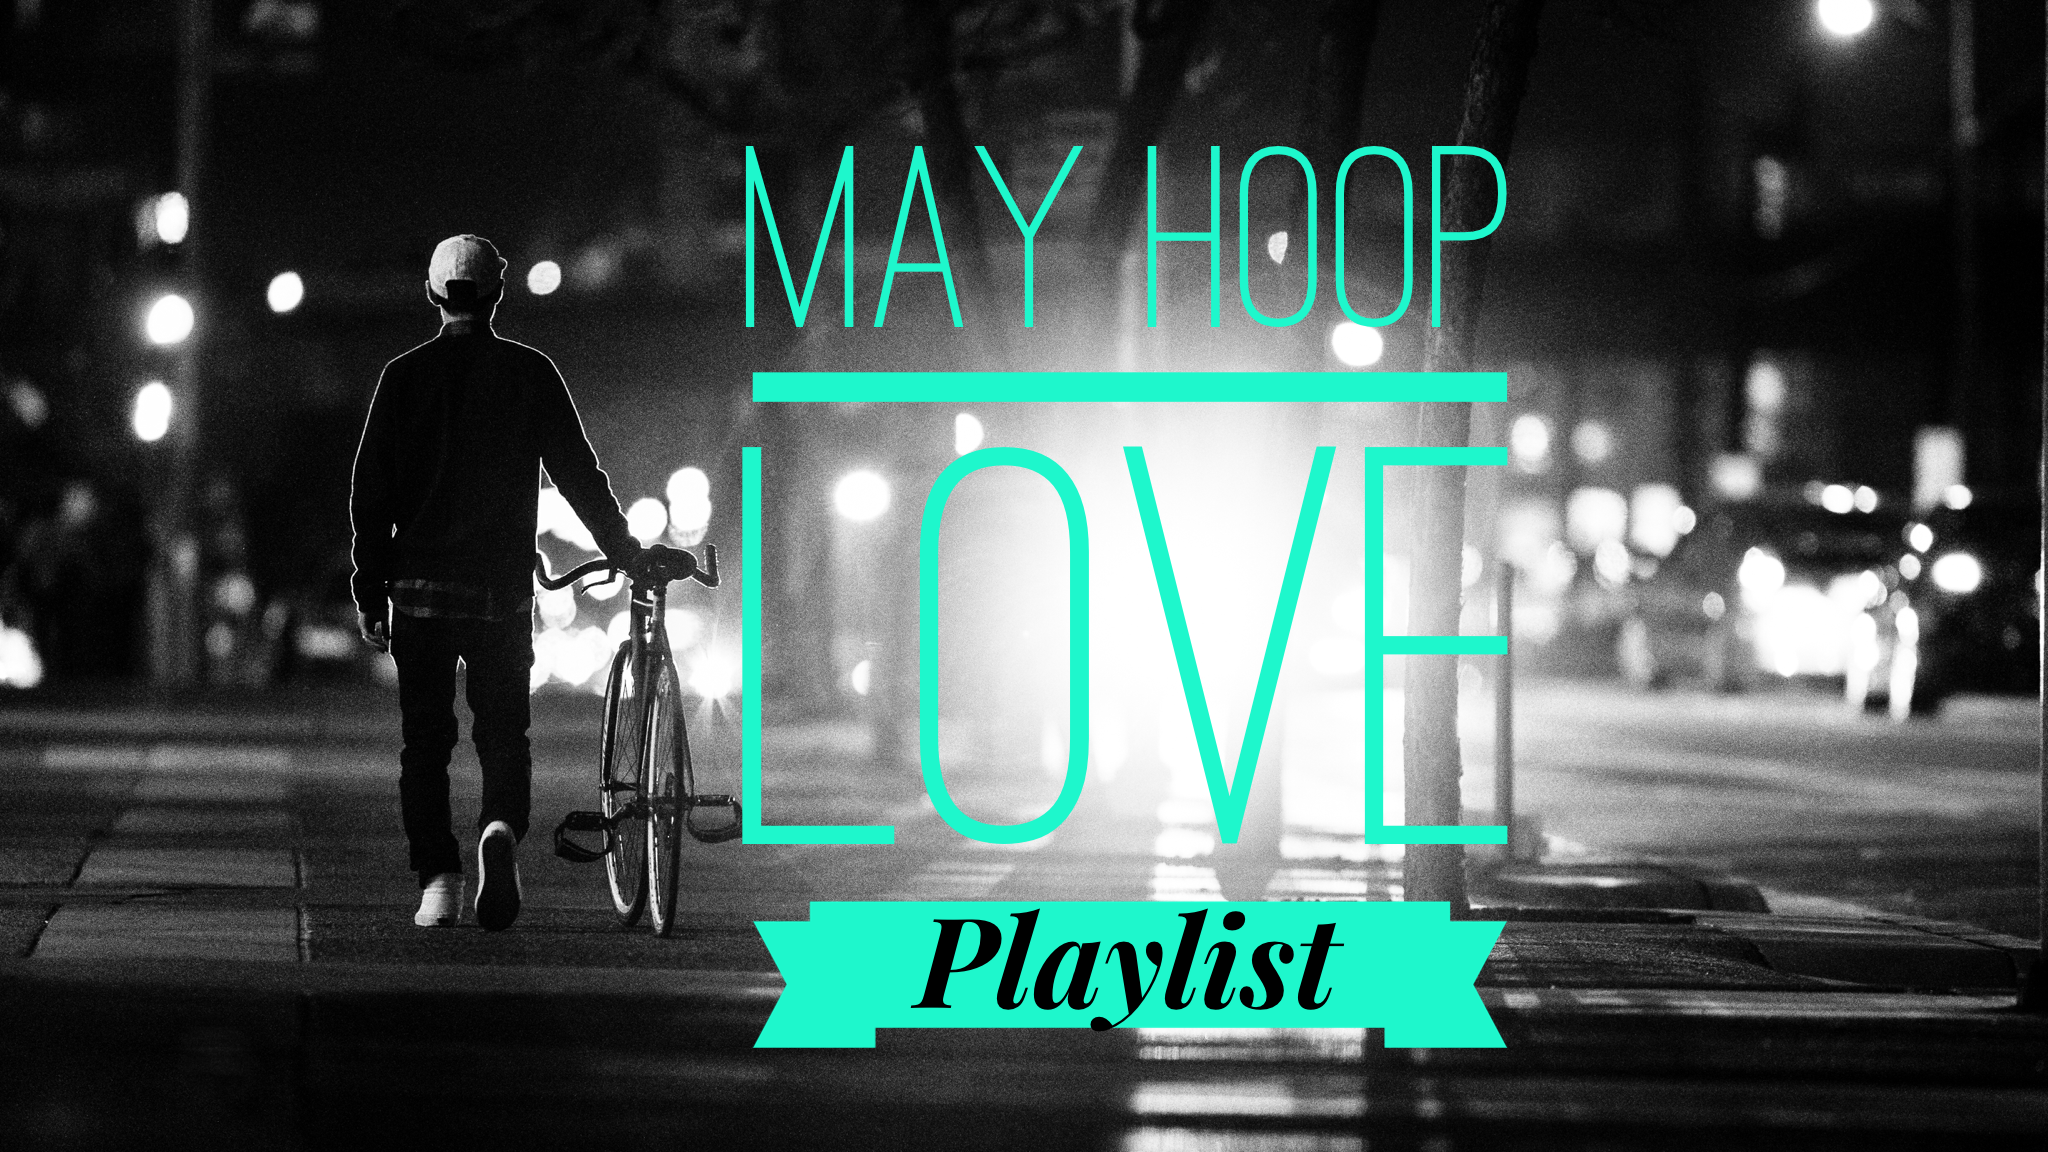 May Hoop Love Playlist